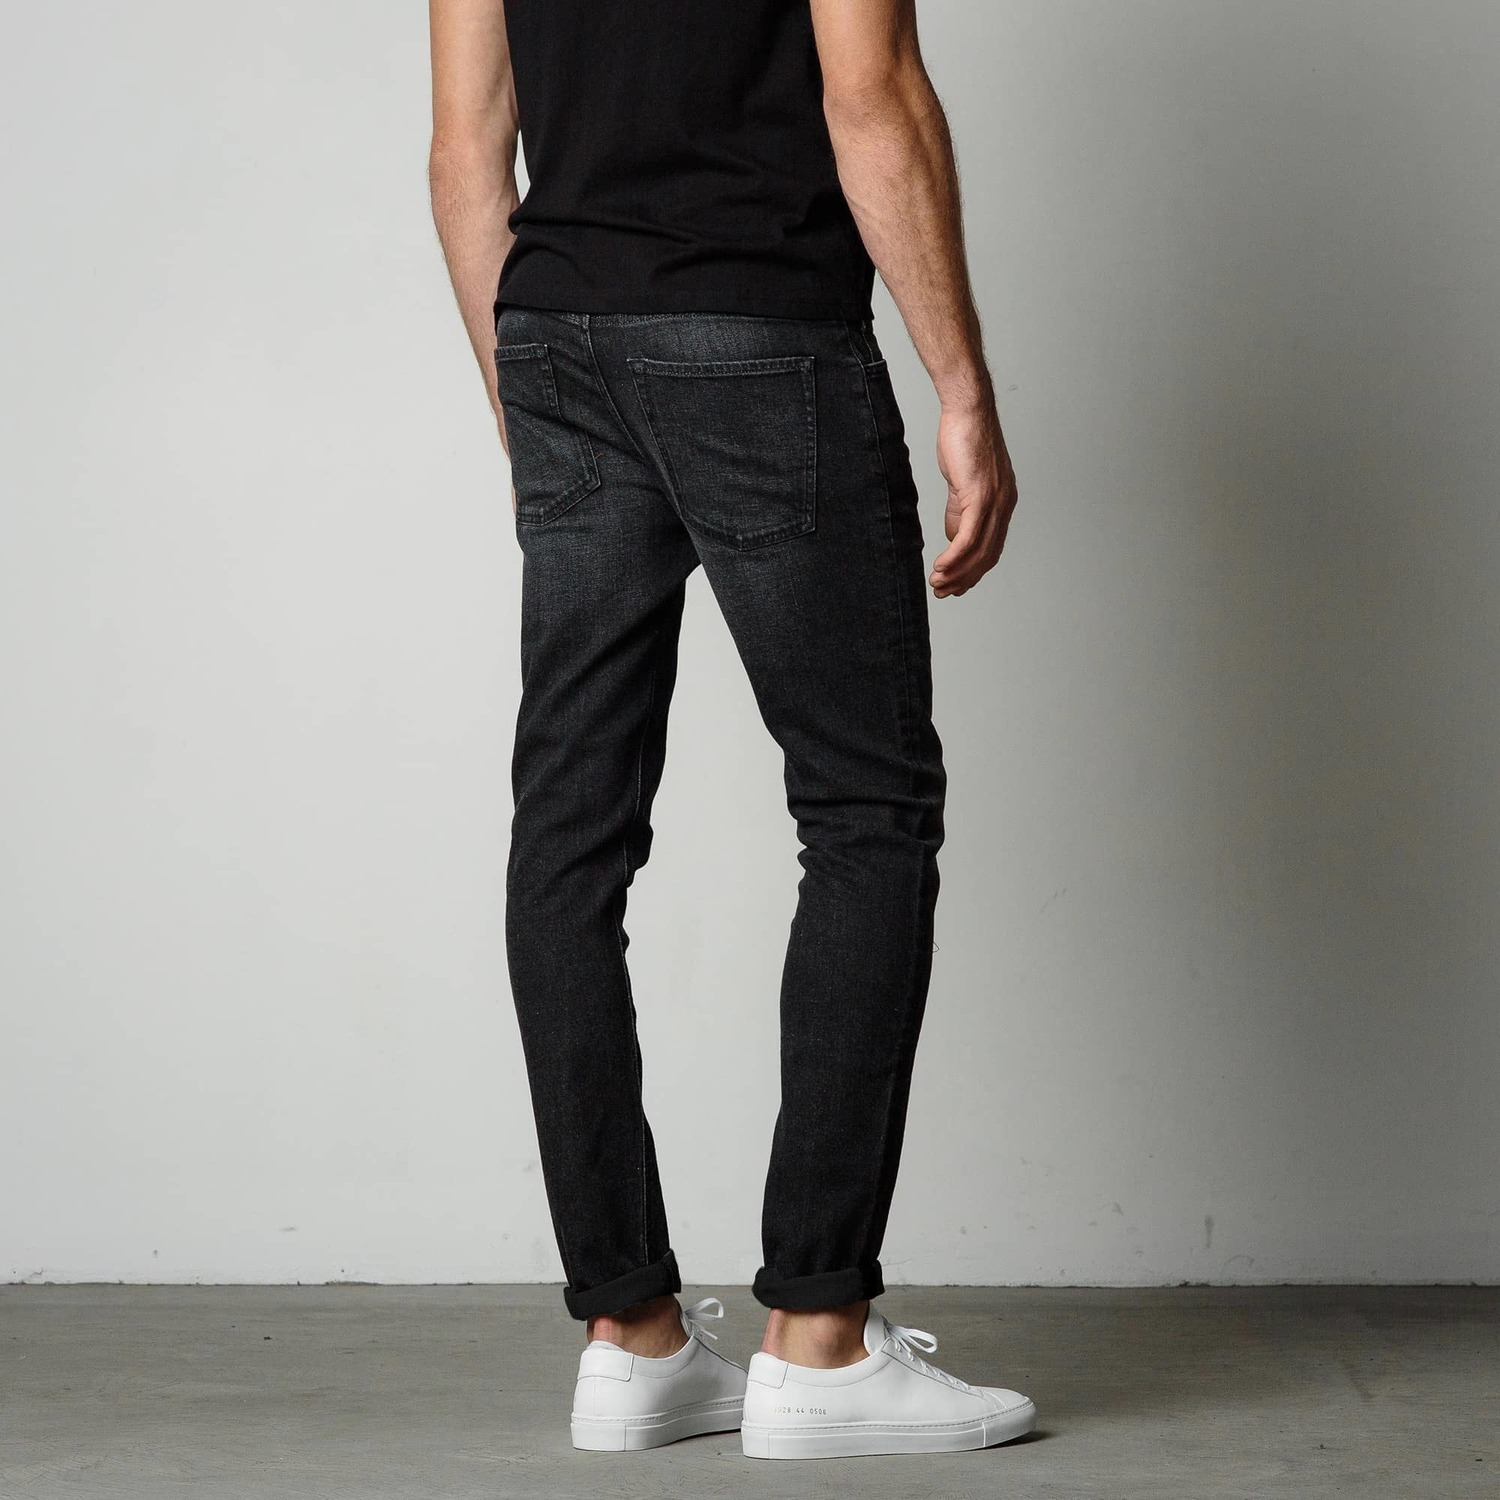 Mens Skinny Jeans In Faded Black 85 Dstld